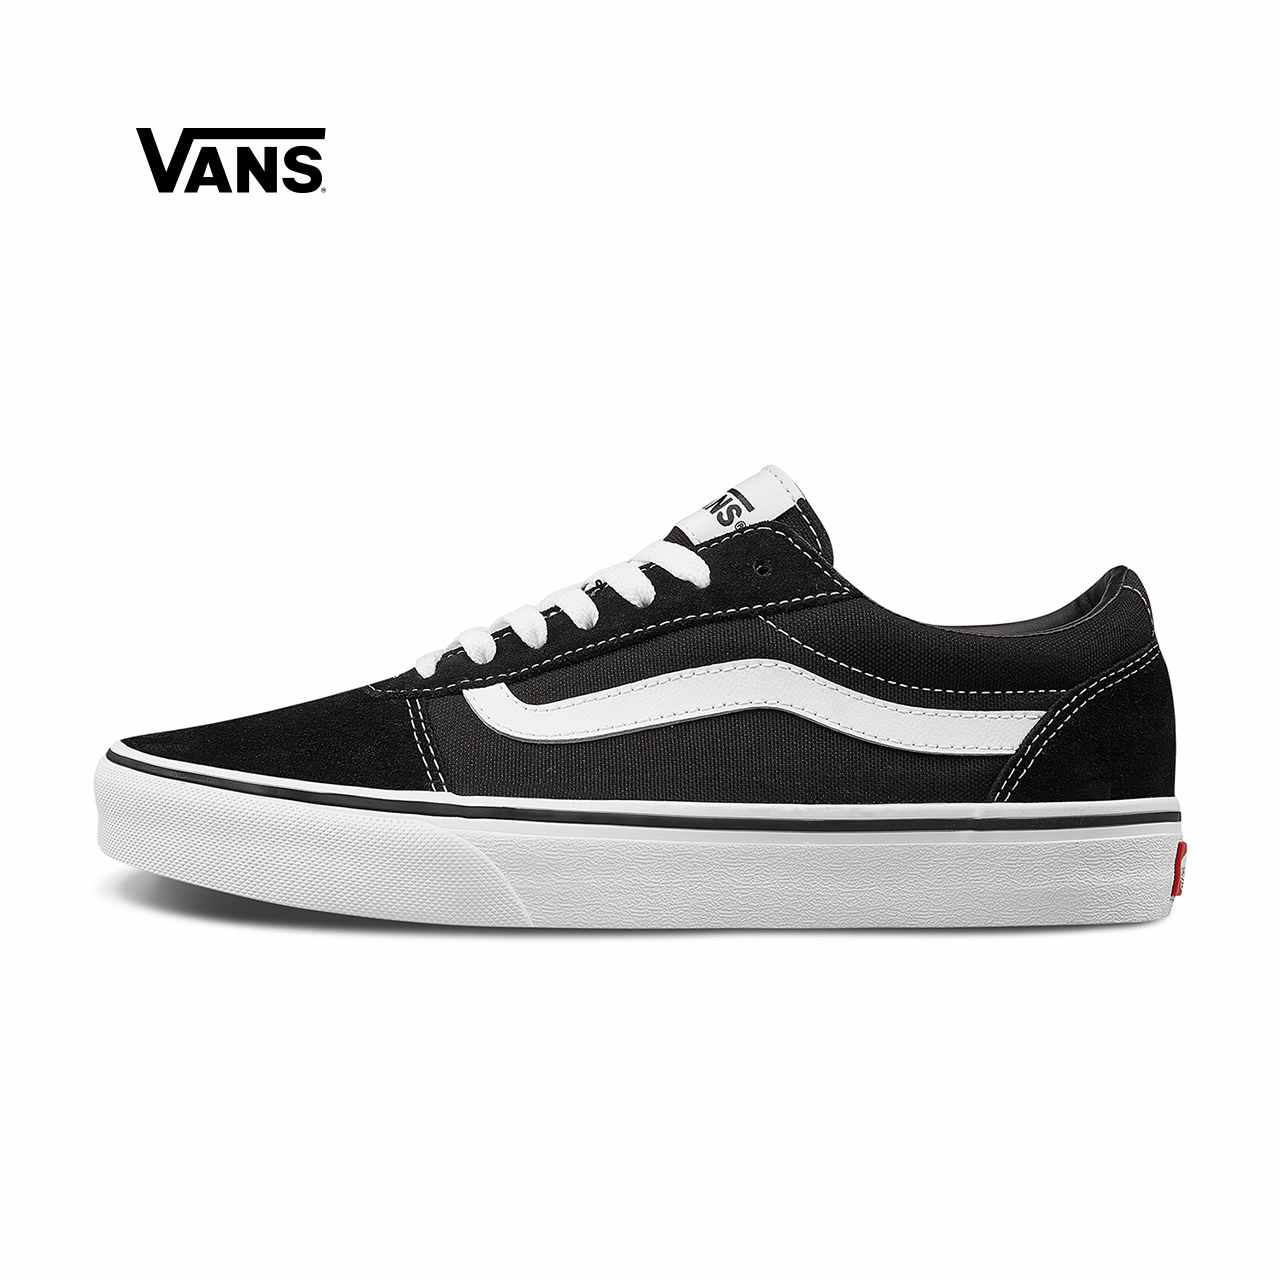 Vans vans sports leisure series ward shoes new low top men's black official authentic